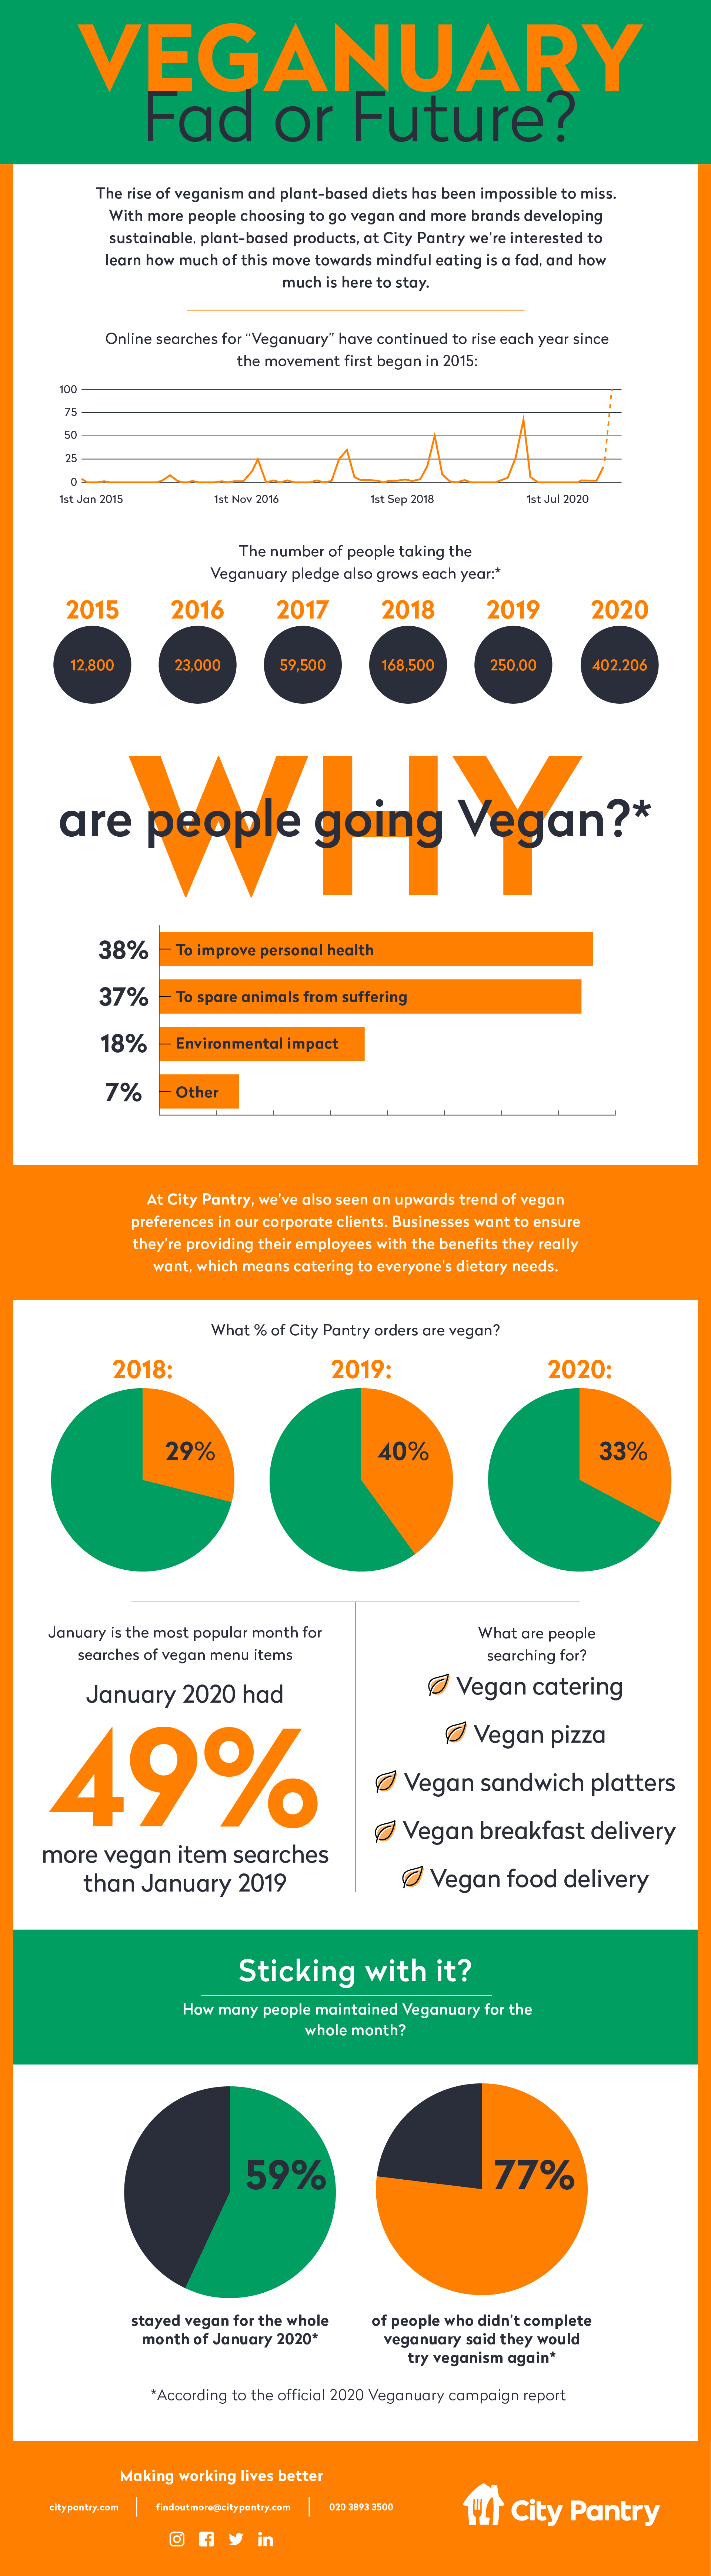 Infographic about Veganuary trends over the year. It shows that the number of people that have taken the pledge has grown year on year, with over 400,000 people in 2020. 38% of people are going vegan to improve personal health, while 37% want to spare animals from suffering. 18% go vegan for the environmental impact. At City Pantry, we've also seen an upwards trend of vegan preferences in our corporate clients. The number of vegan orders rose from 29% in 2018 to 40% in 2019, and dipped to 33% in 2020. January is the most popular month for searches of vegan menu items, and people are searching for things like 'vegan catering', 'vegan pizza', and 'vegan sandwich platters'. 59% of people who participated in Veganuary during 2020 stayed vegan for the whole month of January, but 77% of people who didn't complete the whole month said they'd try veganism again.